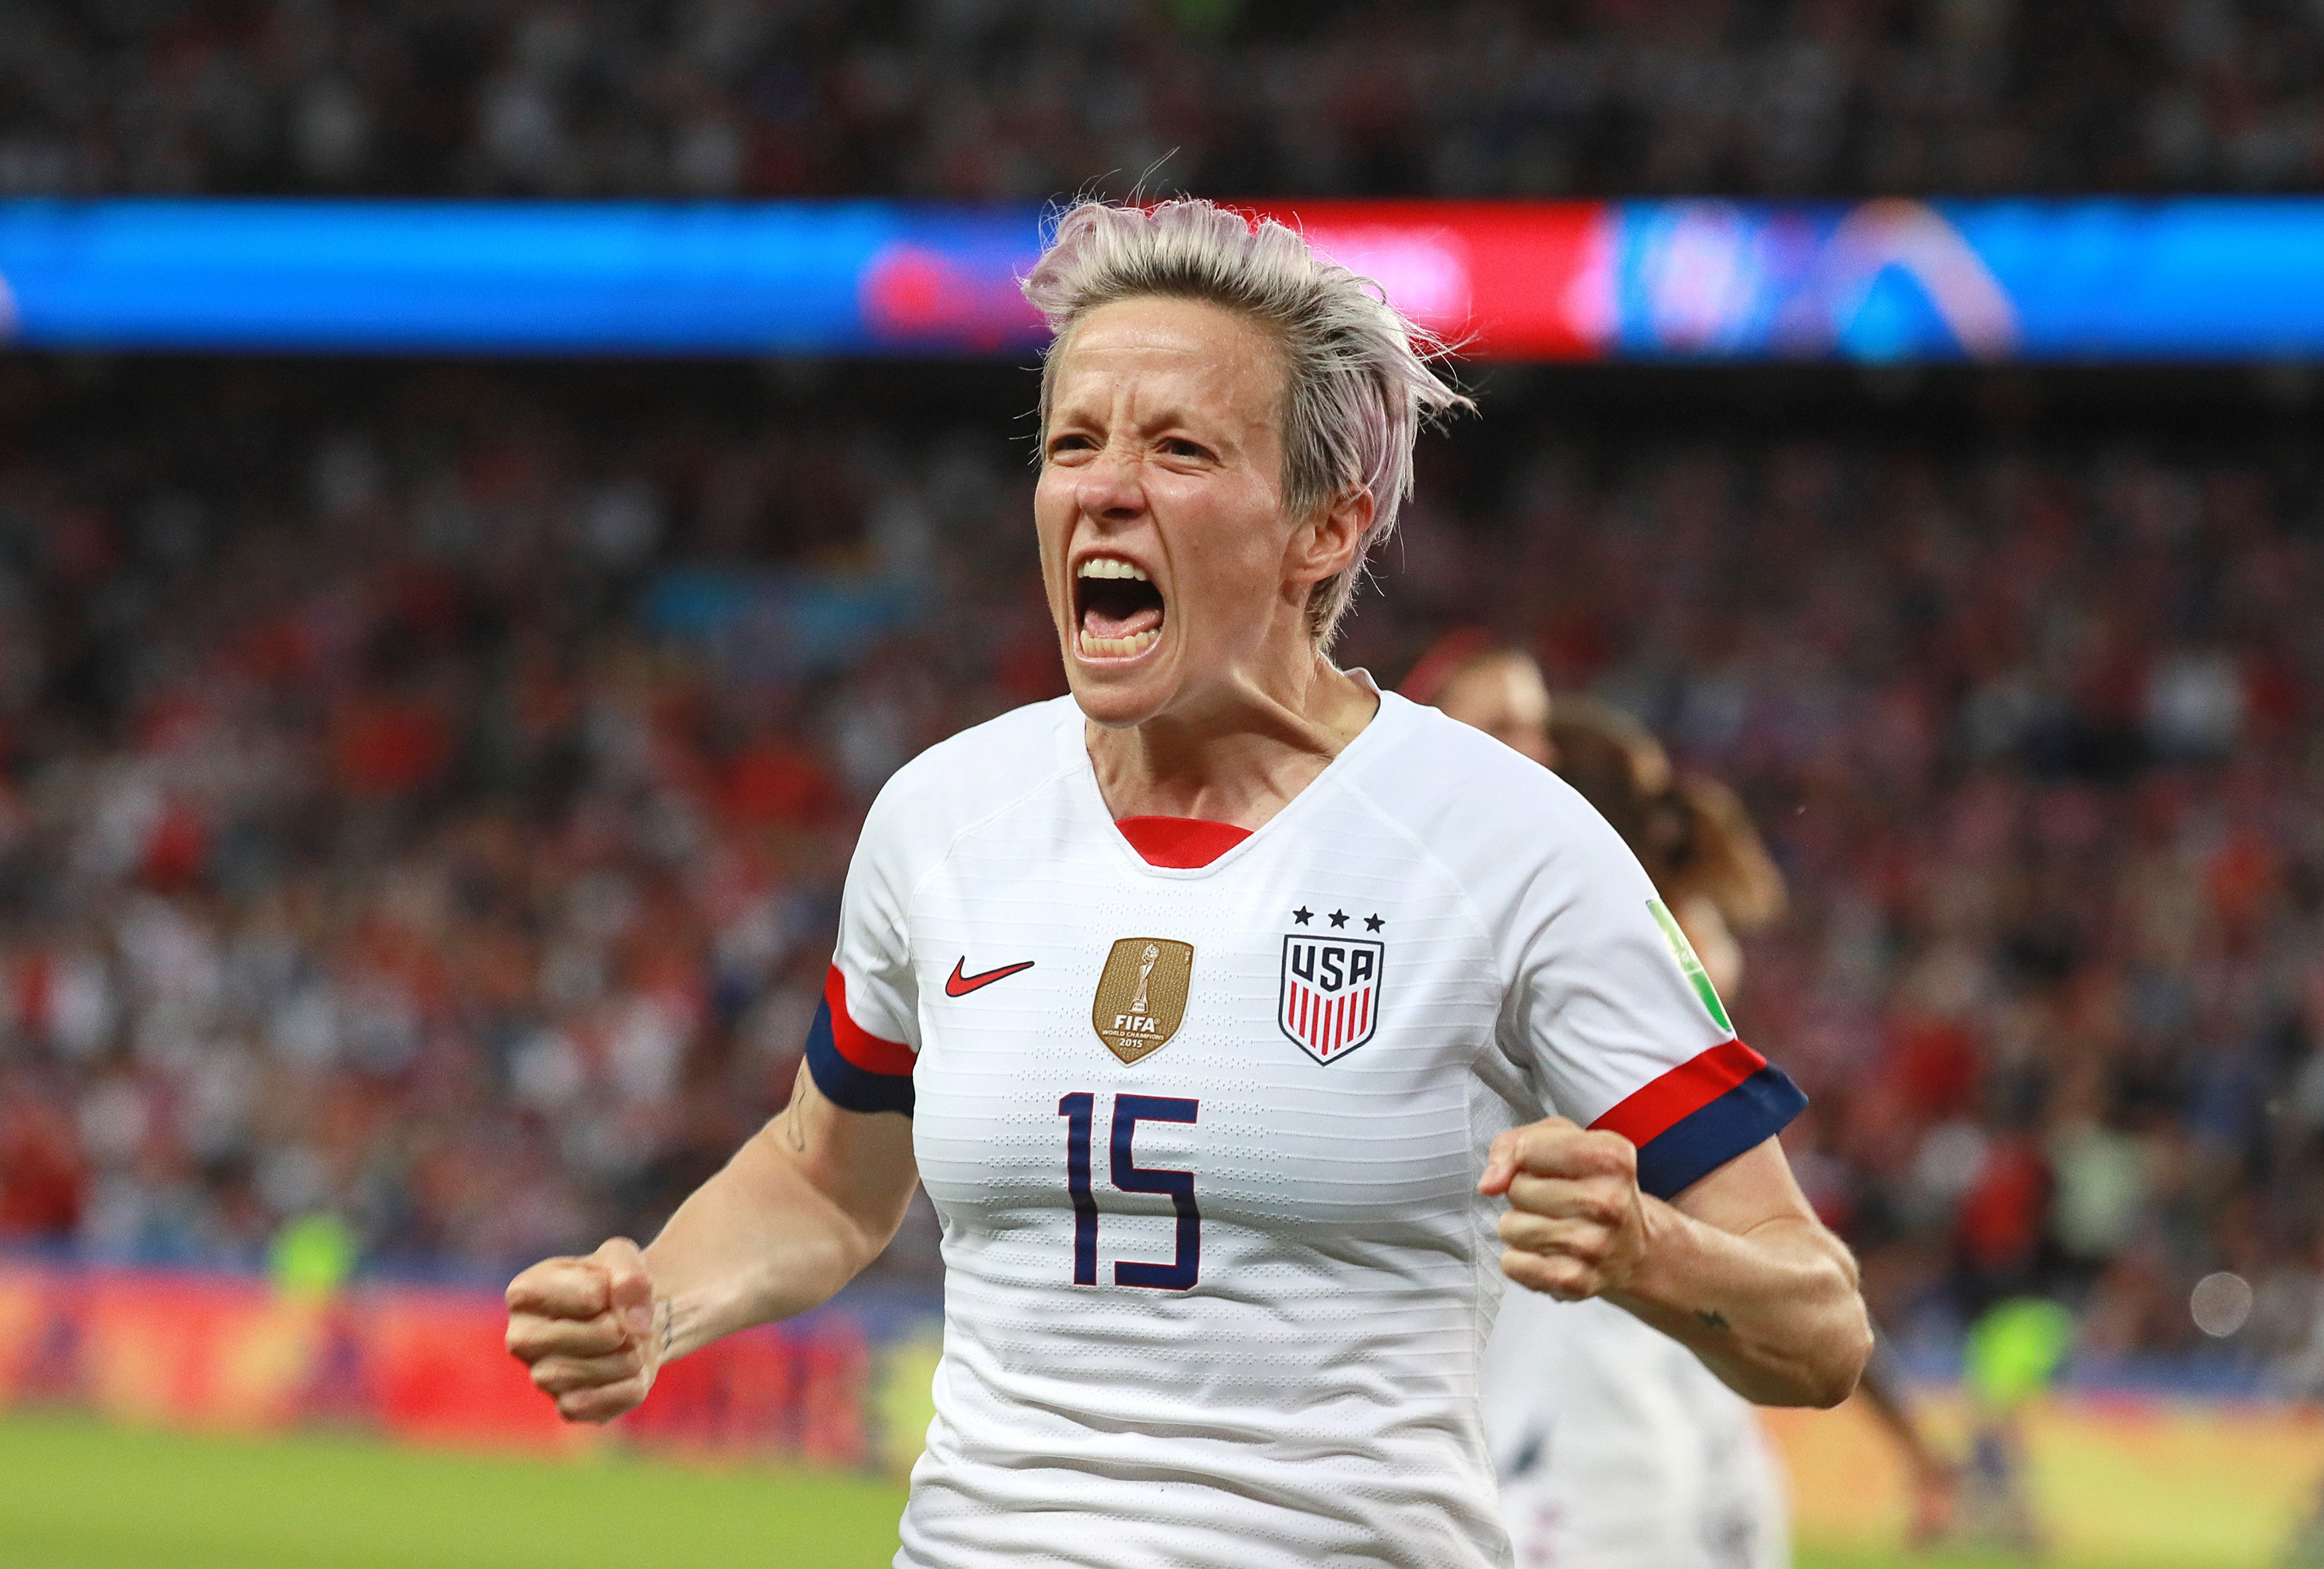 US football star Megan Rapinoe says IOC is 'scared of the wrong things' amid controversy over protest ban at Tokyo 2020